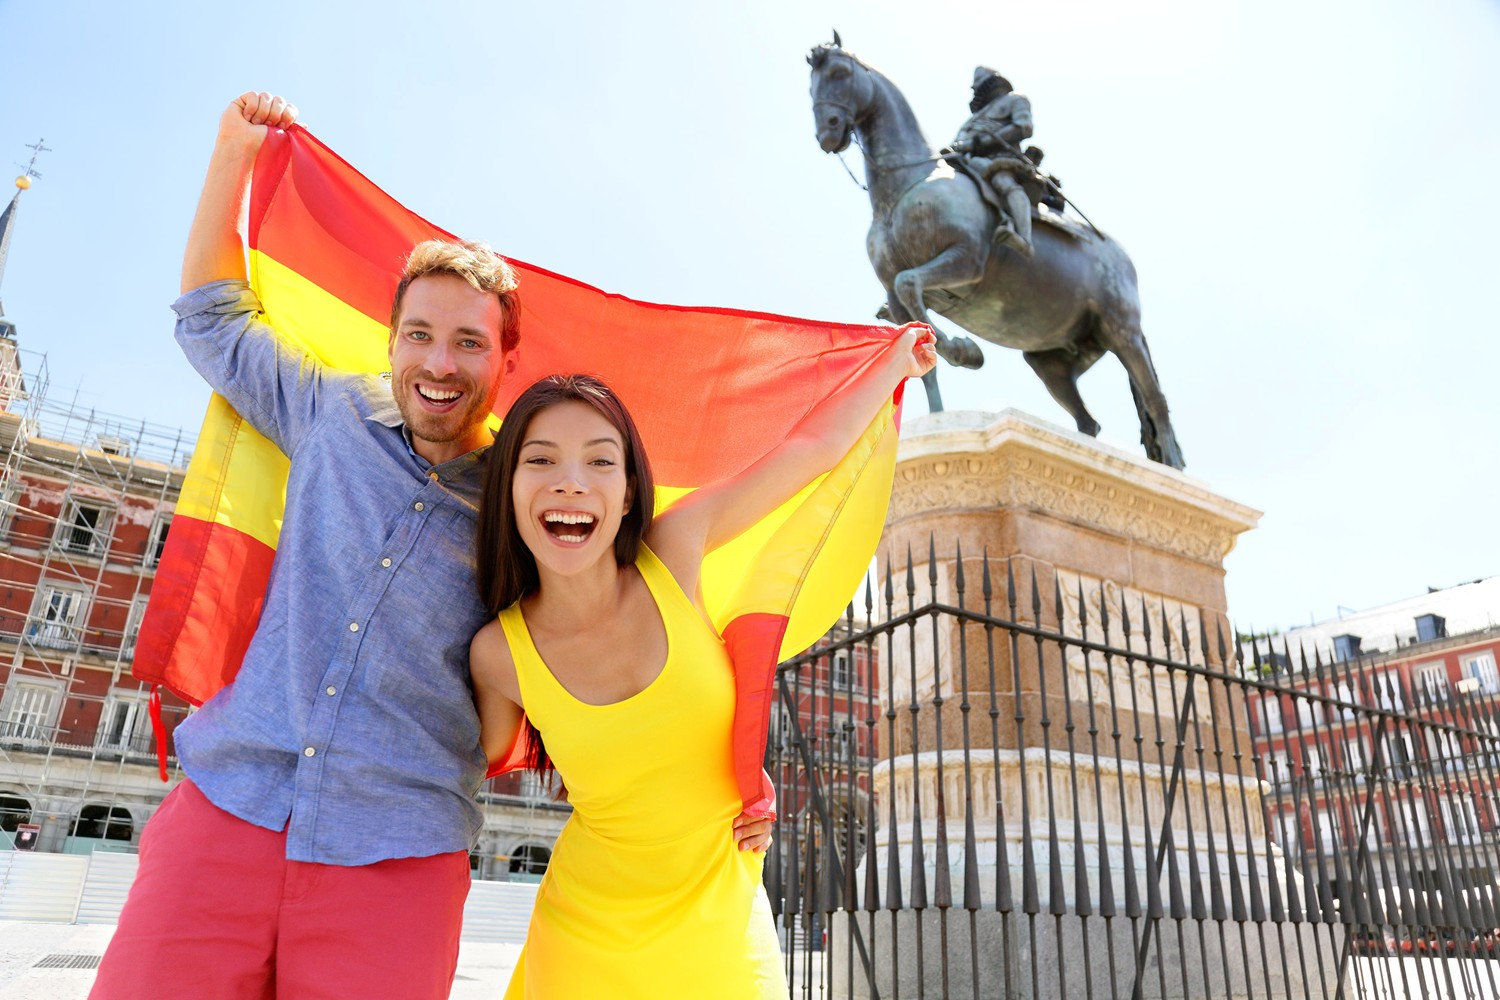 Spain Vacation Packages from Travel Agents in Chicago - Sunset Travel & Cruise, W Fullerton Ave 60614